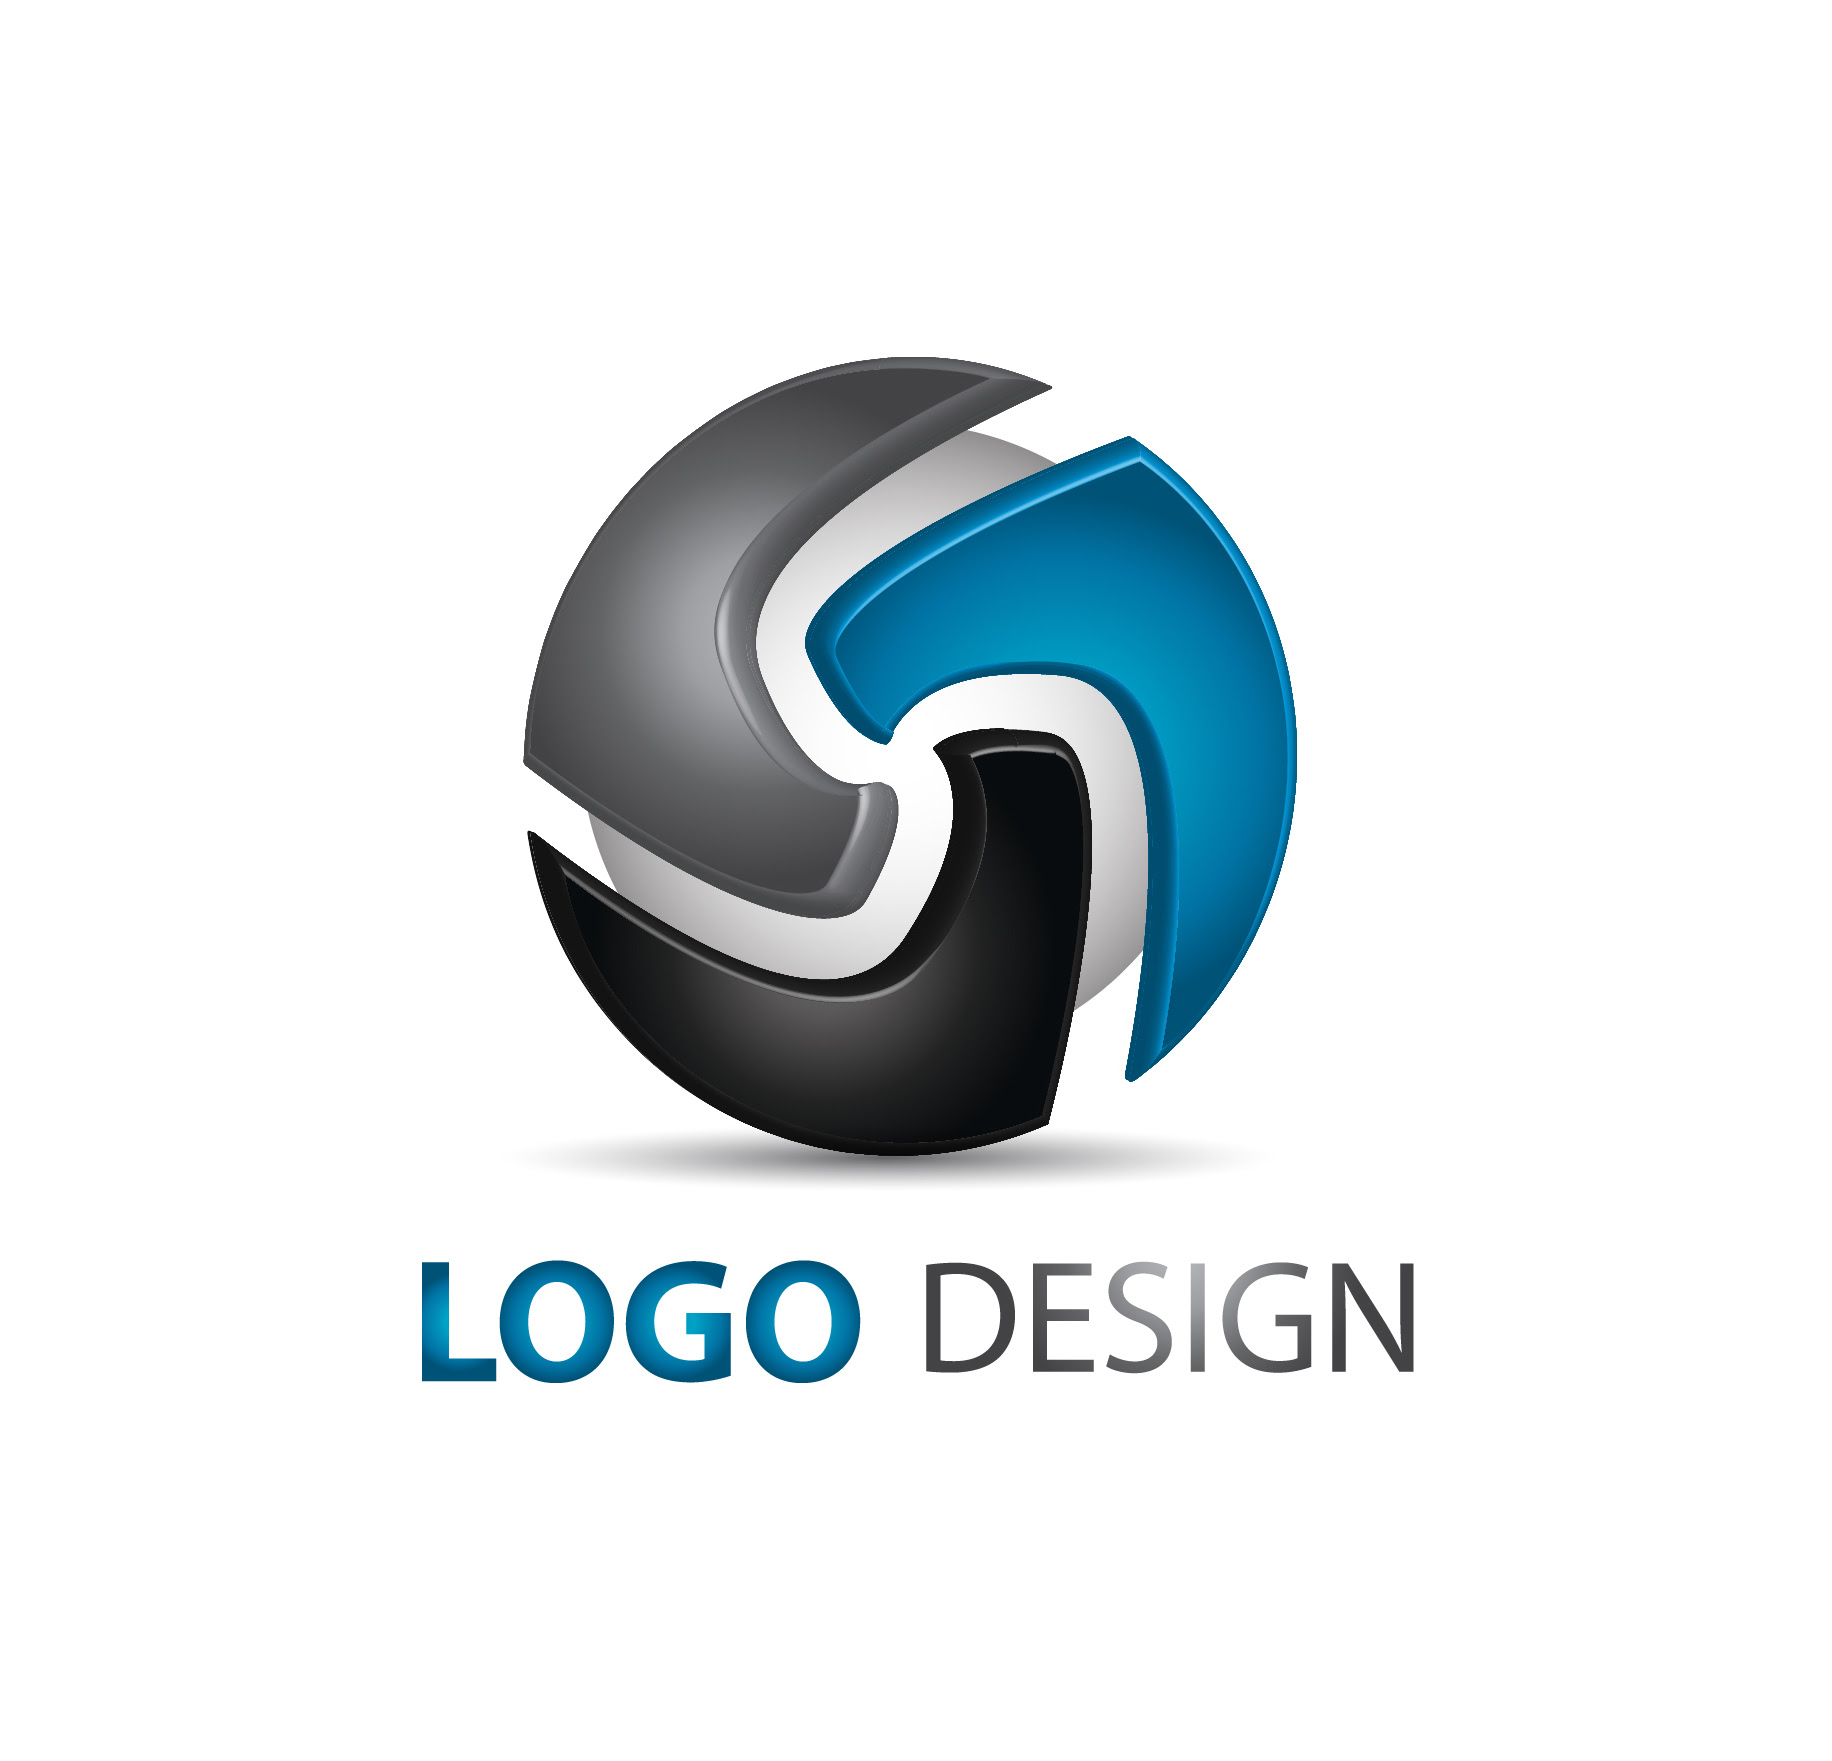 How to create a 3D logo on illustrator